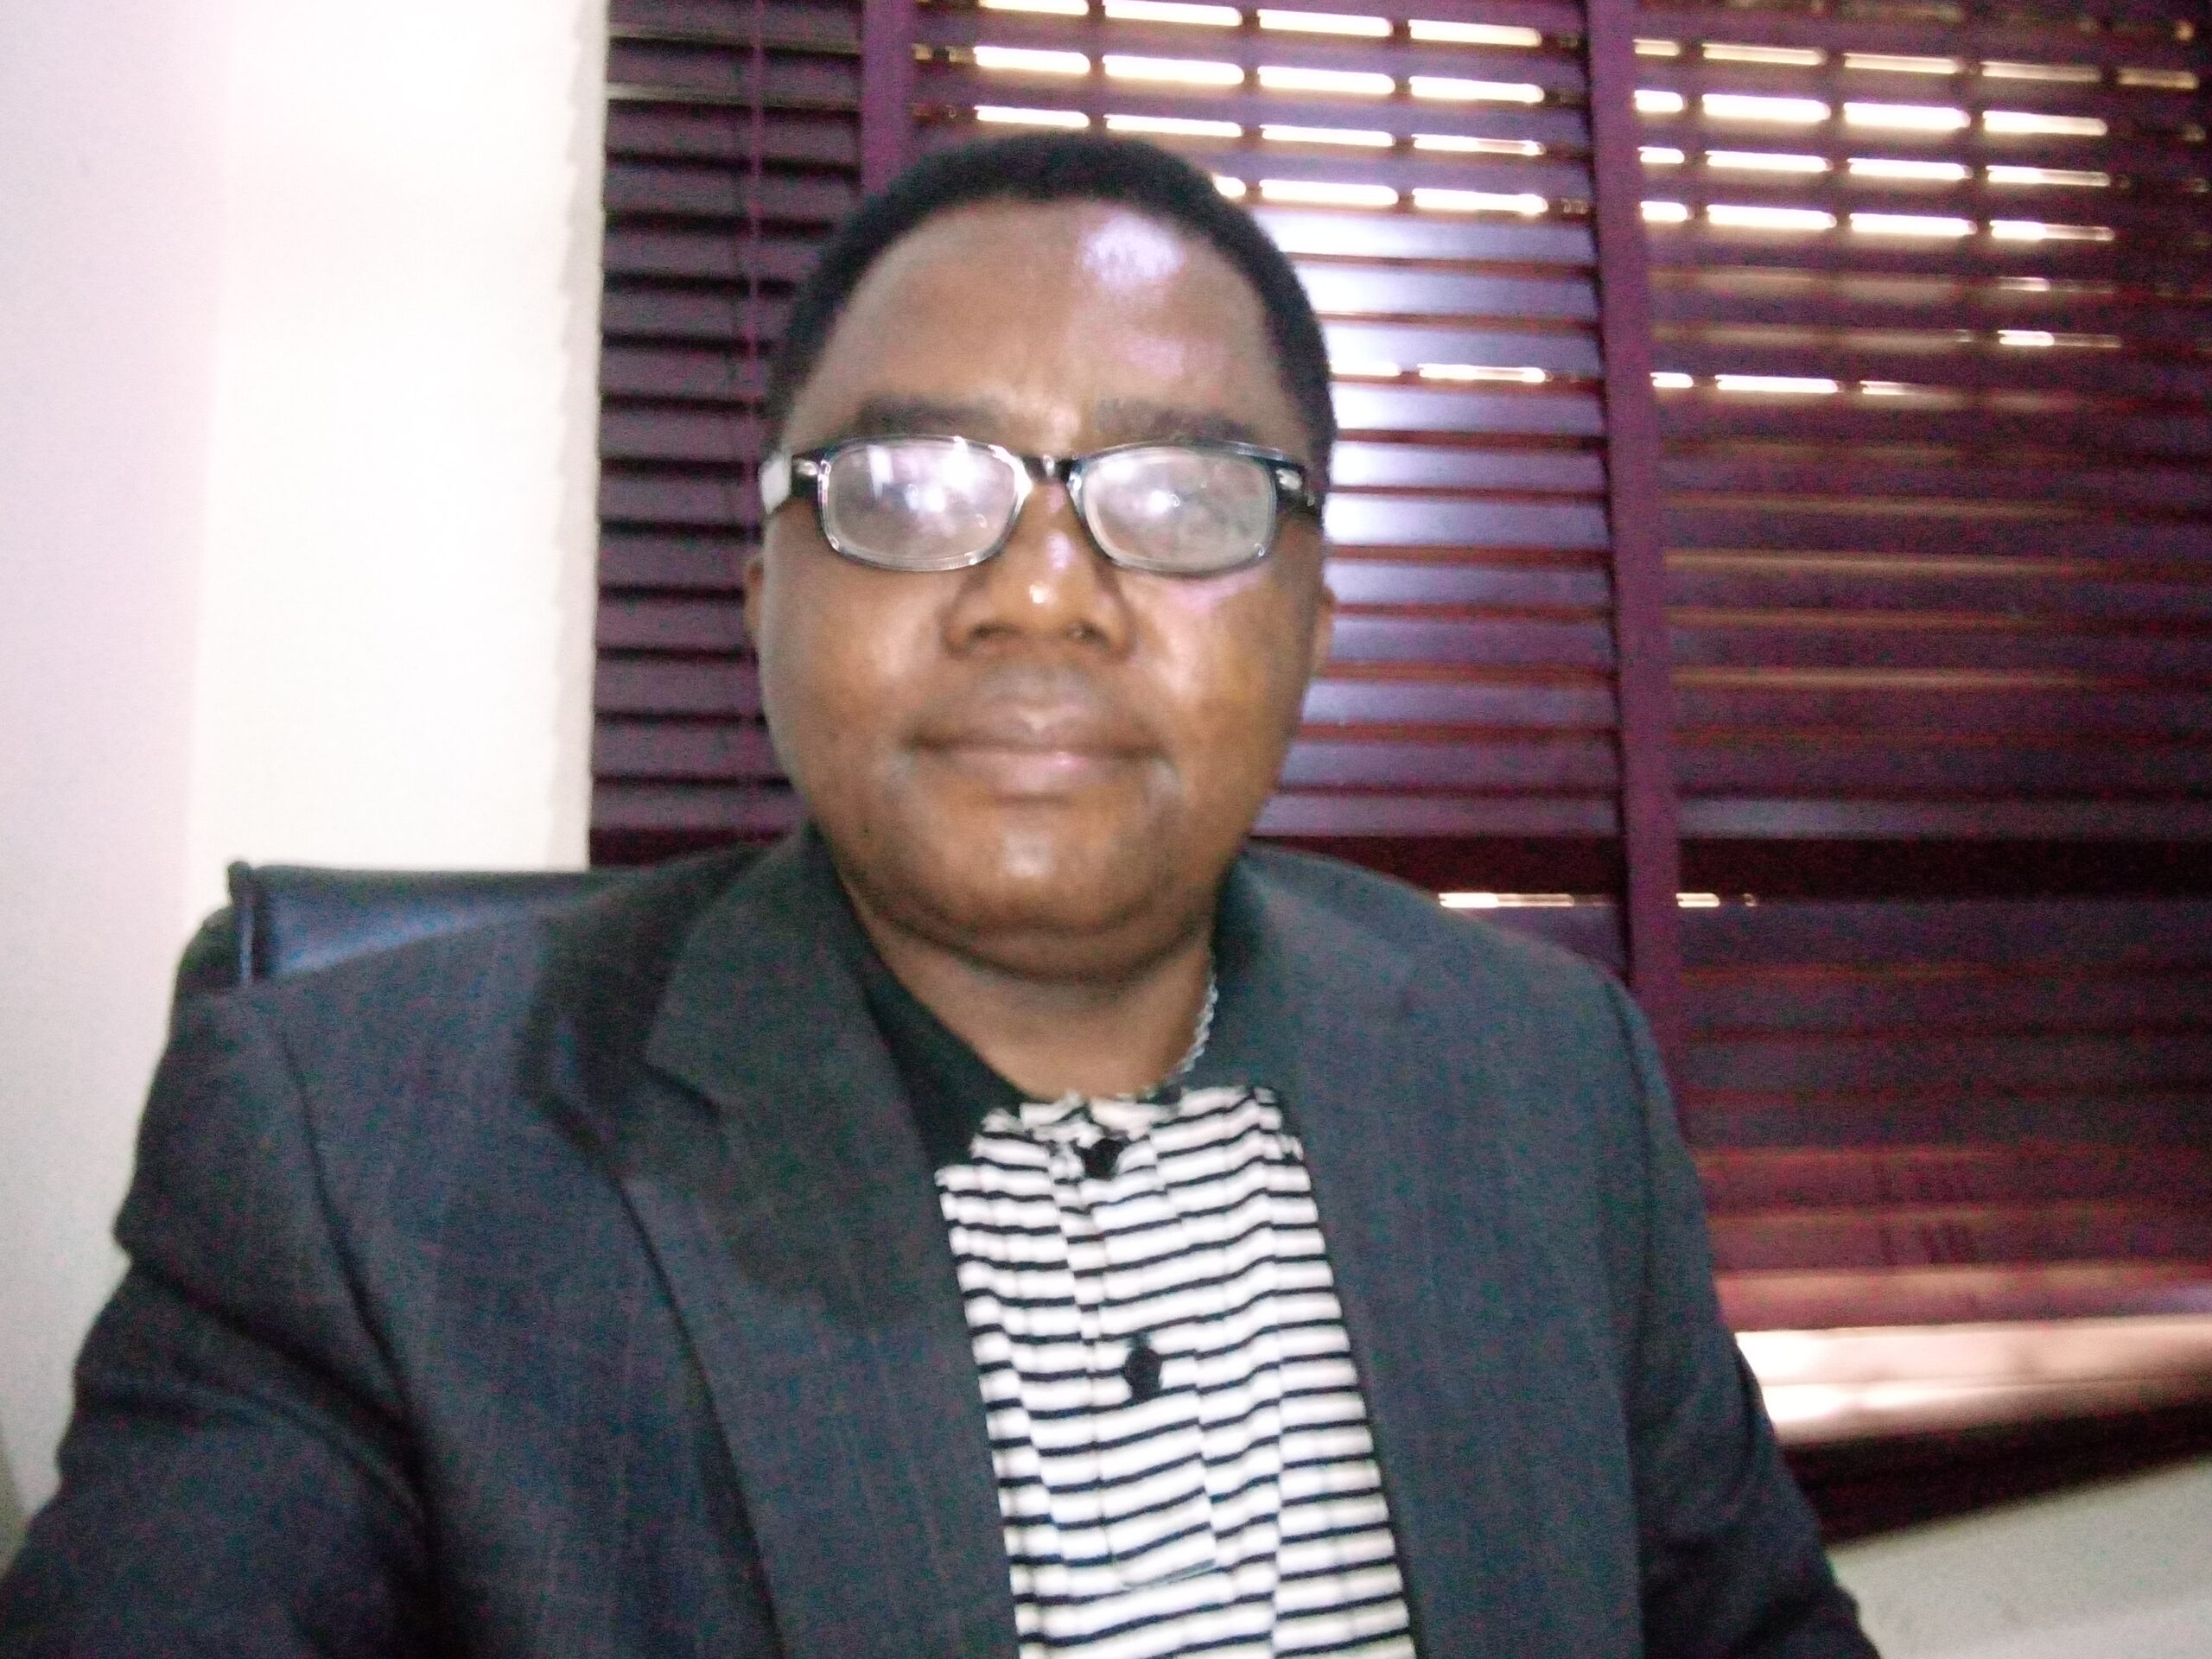 APC National Chair: Not Too Young To Perform Advocates for Young, Incorruptible Candidate